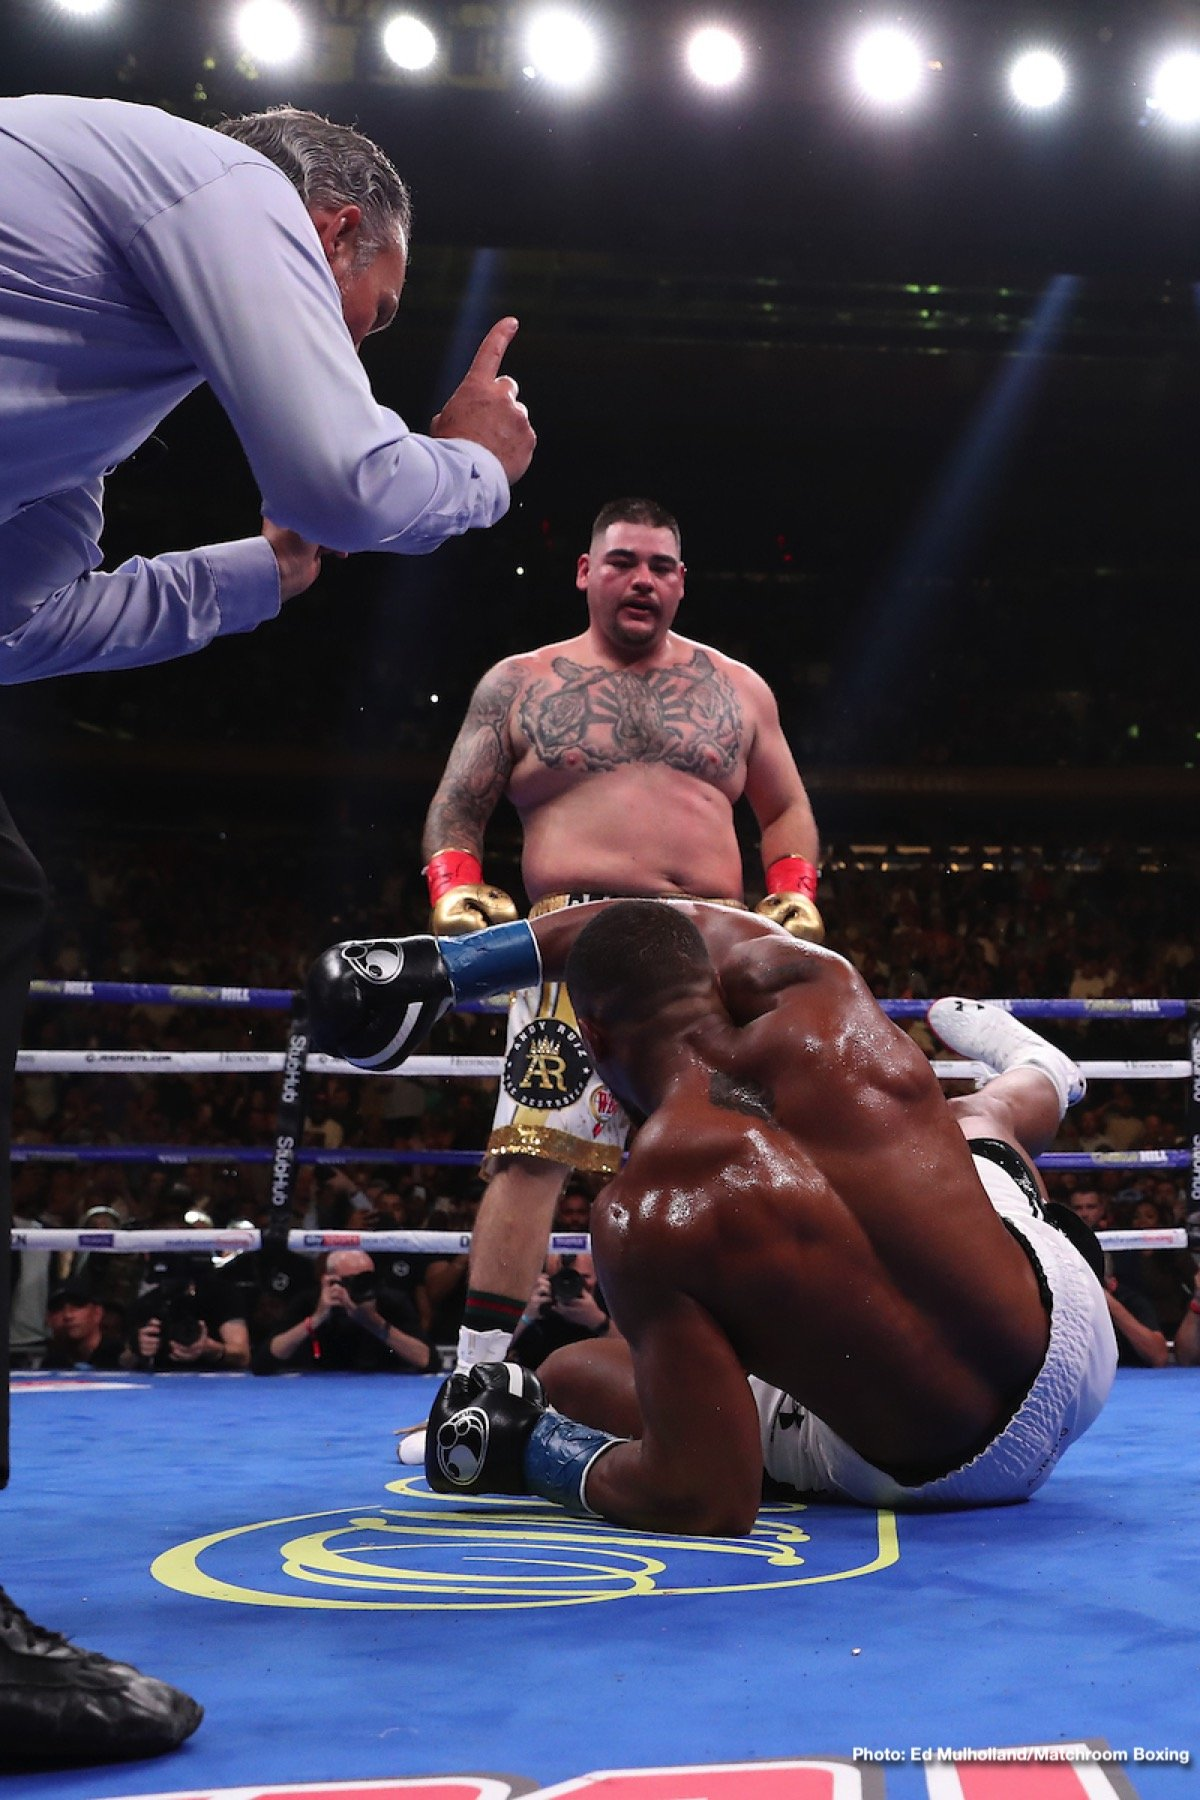 Andy Ruiz, Anthony Joshua - 'The Destroyer' fires warning at 'AJ' ahead of historic rematch